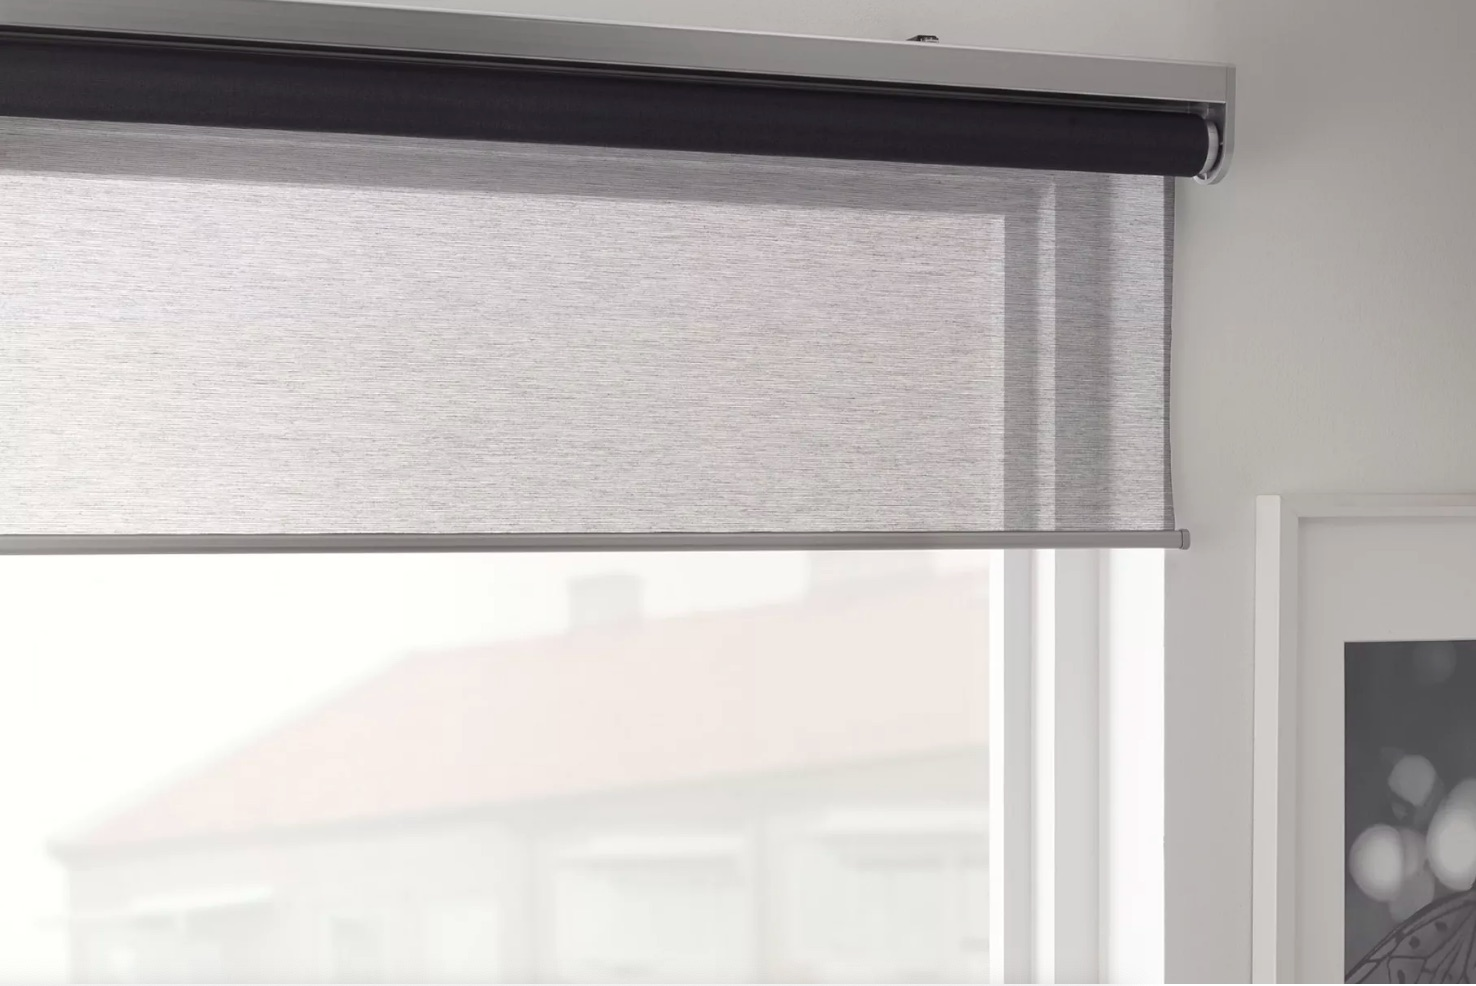 Light gray blinds hanging in window